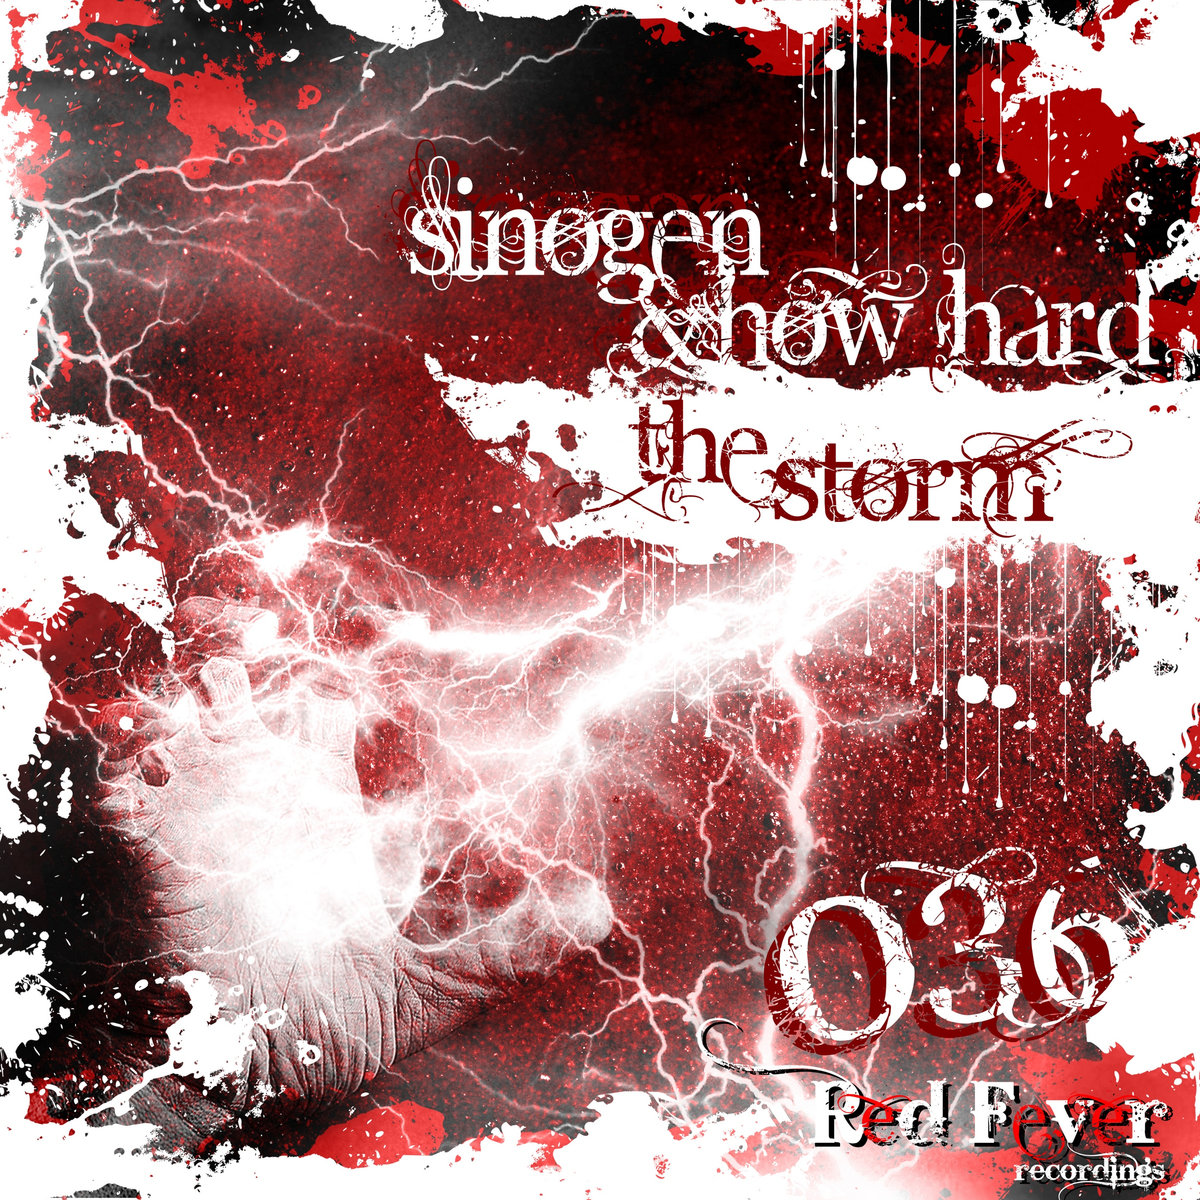 Sinogen & How Hard - Blind Faith @ 'The Storm' album (electronic, demanufacturer)